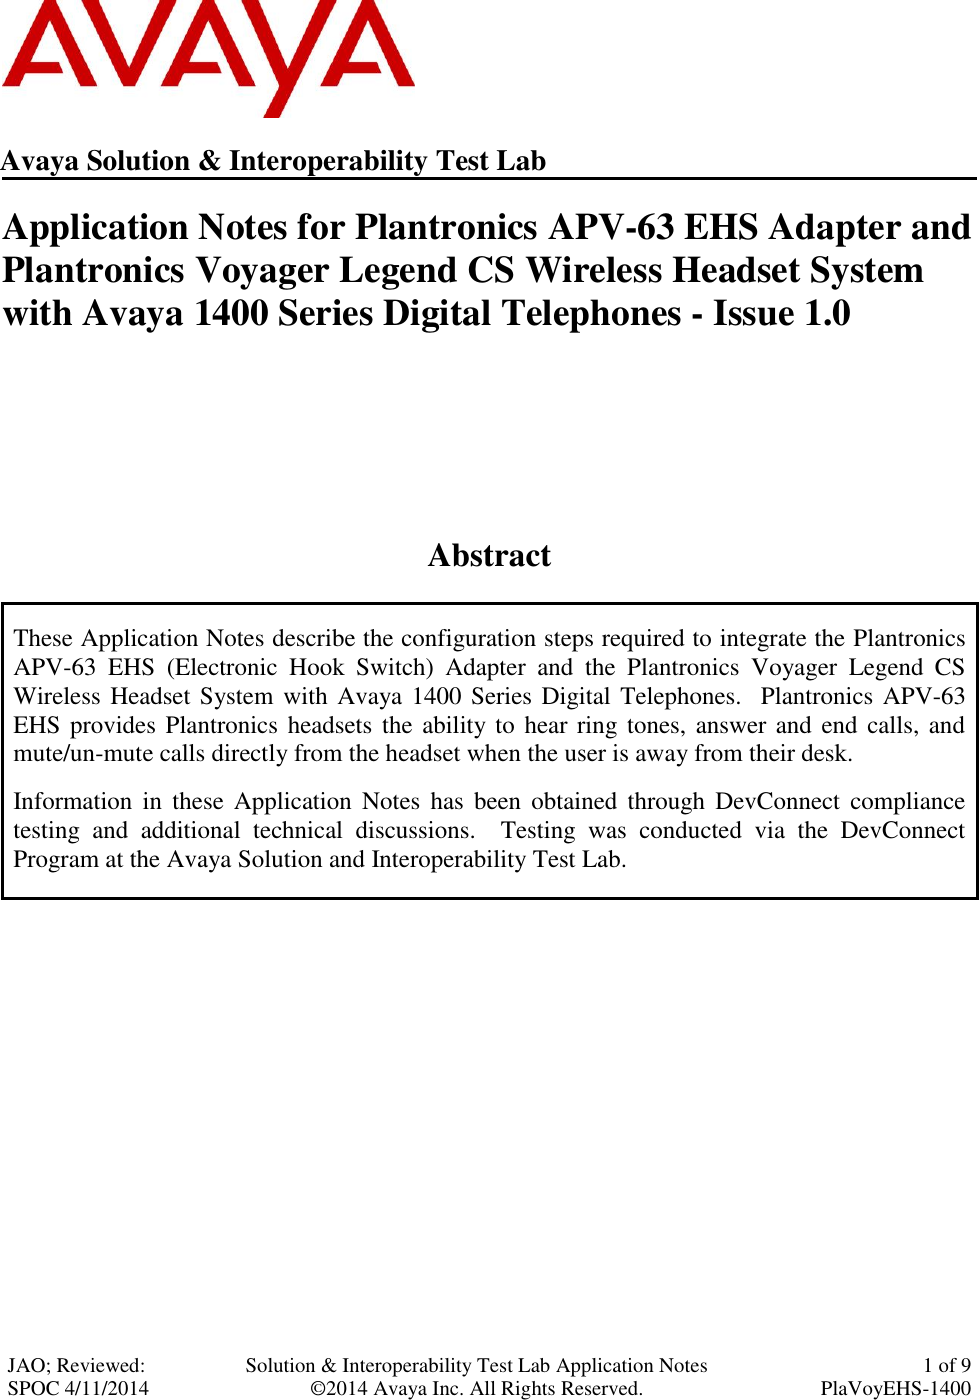 Avaya 1400 Series Digital Telephones Application Note Notes For Plantronics Apv 63 Ehs Adapter And Voyager Legend Cs Wireless Headset System With S